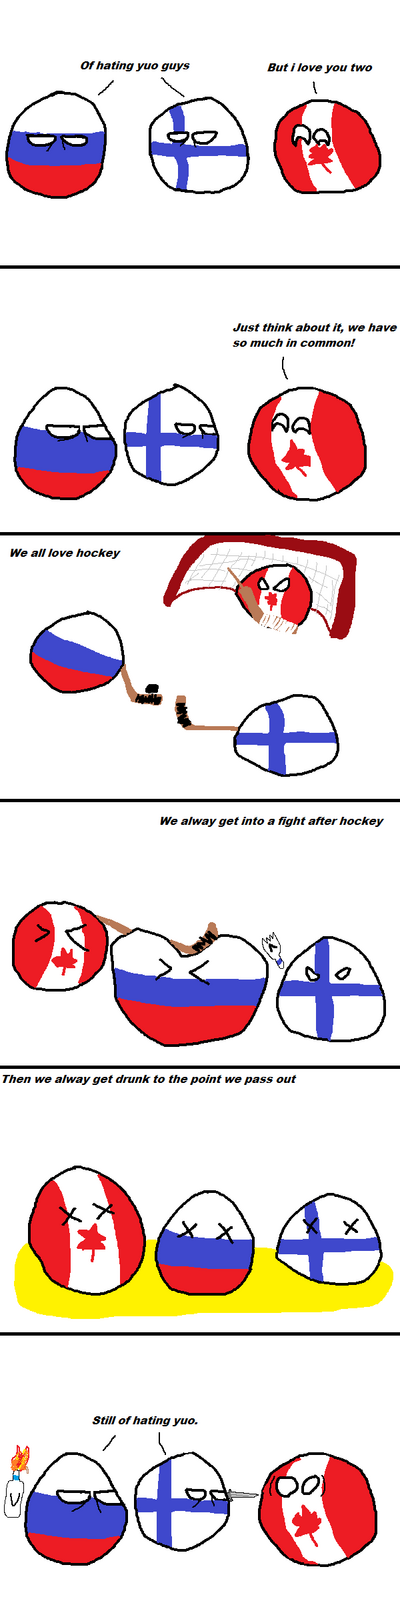 Country-balls-canada-can-t-find-true-friend